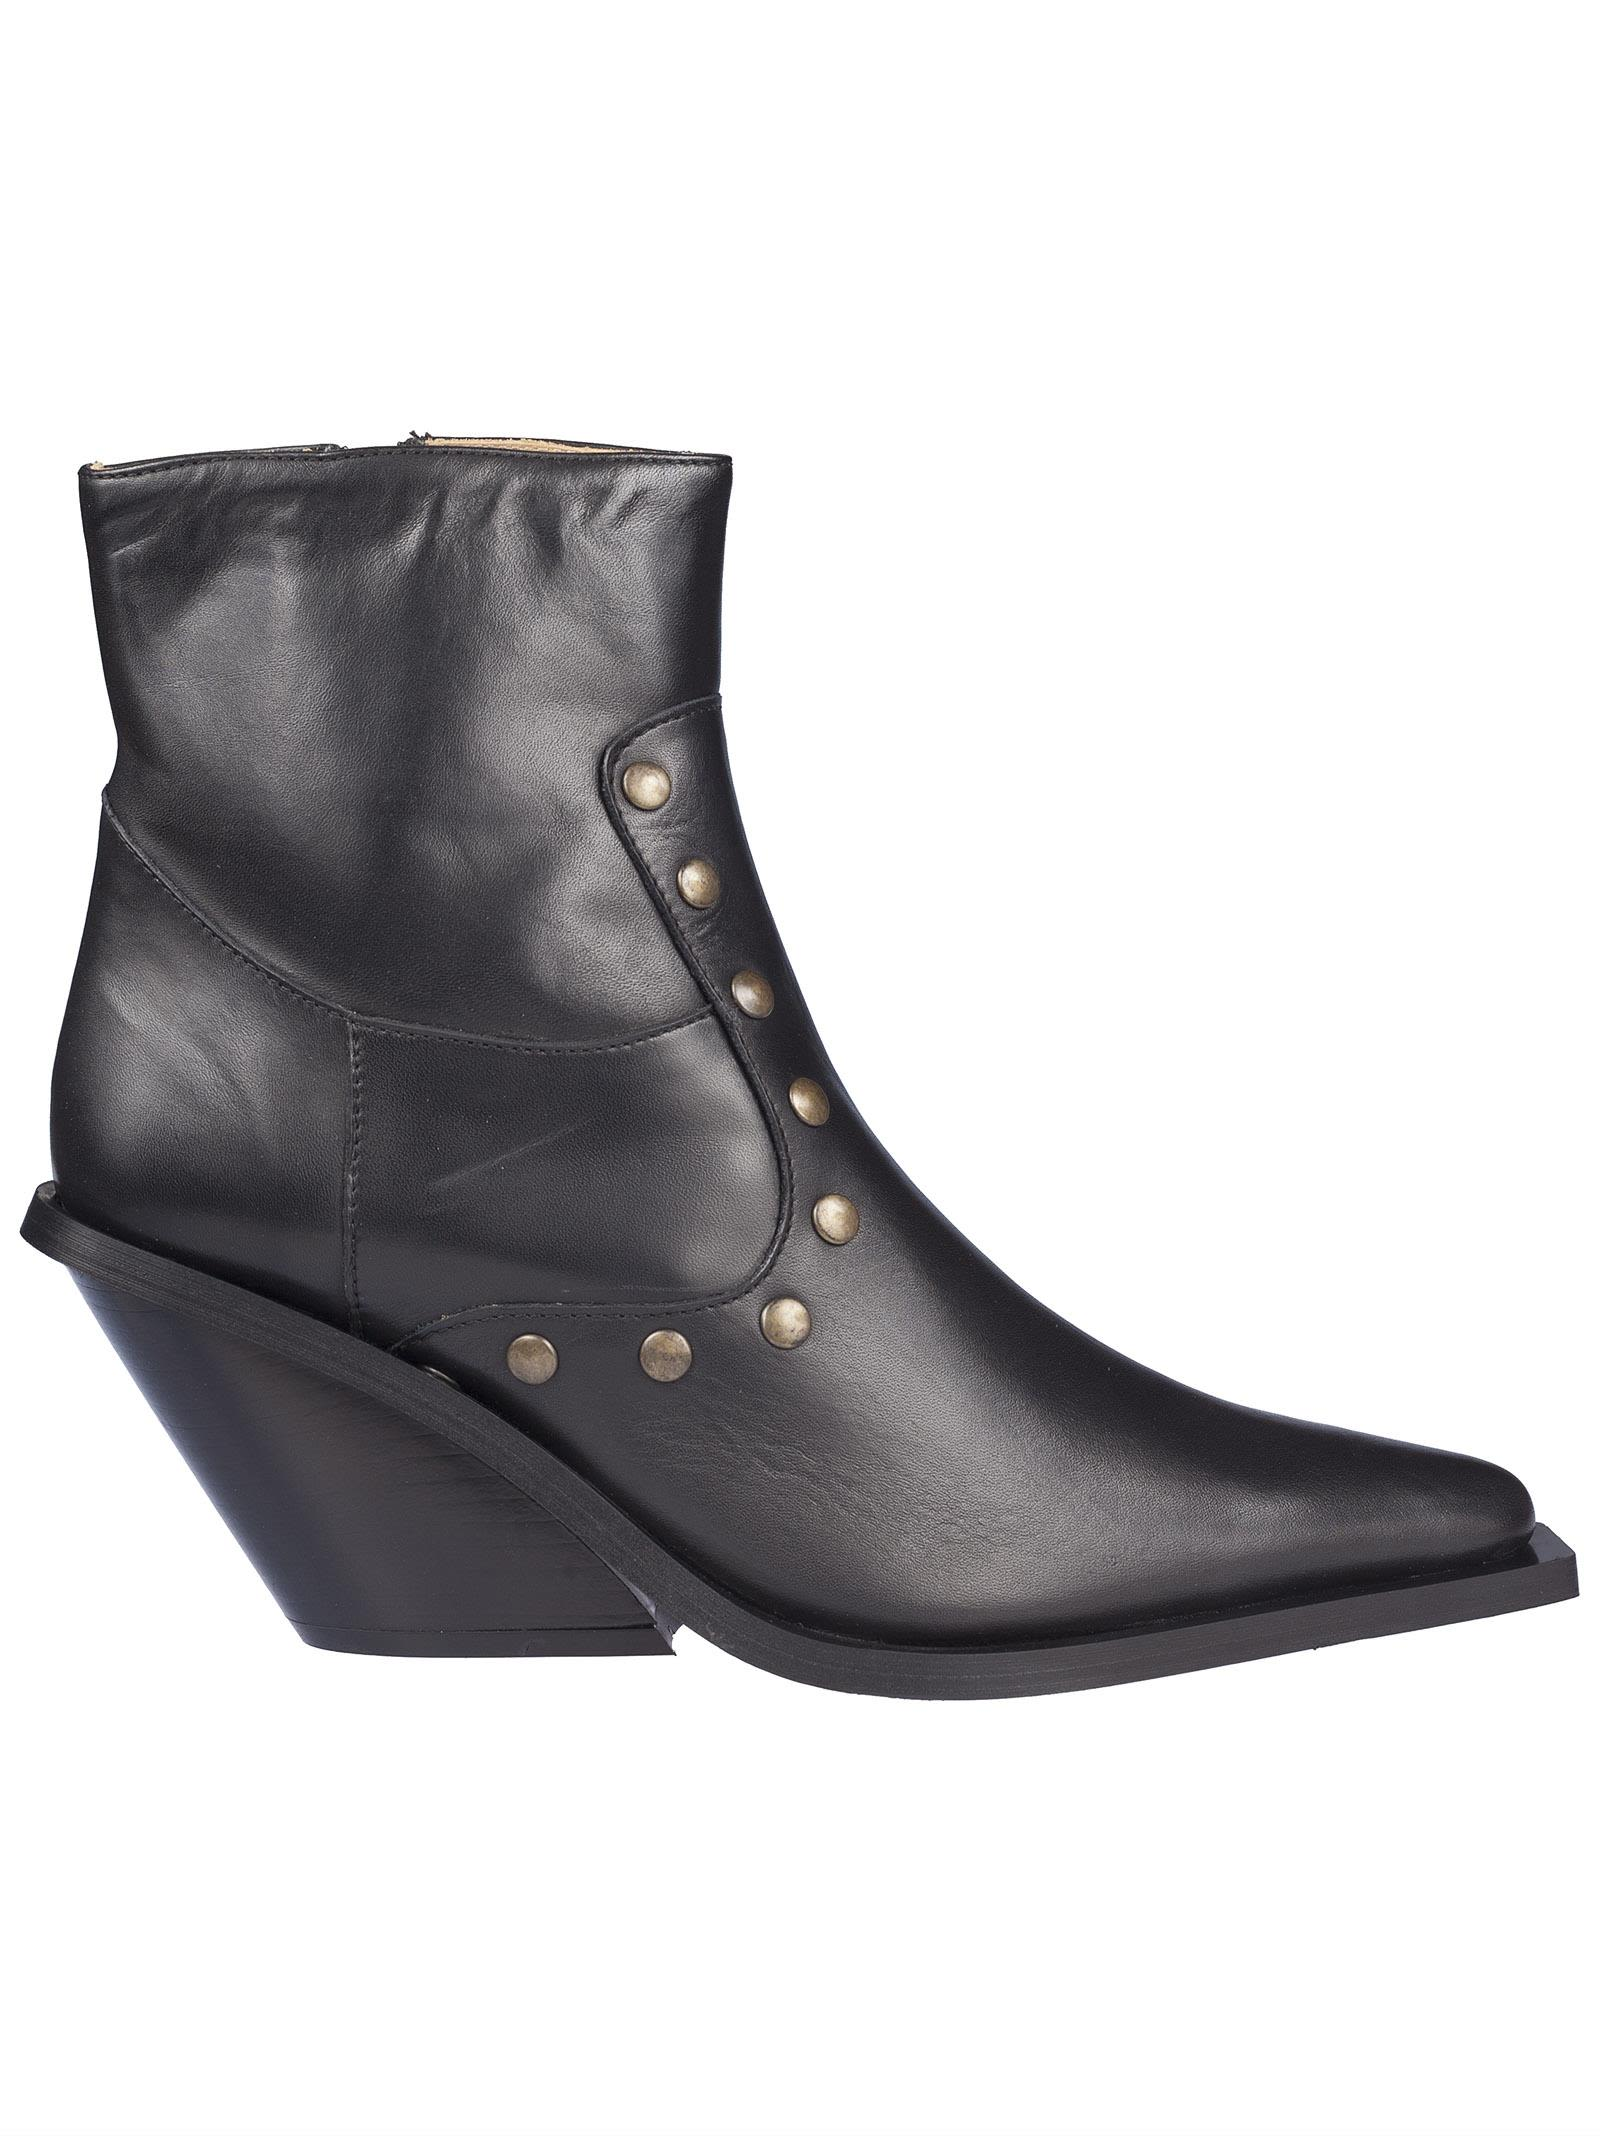 Gia Couture Studded Ankle Boots